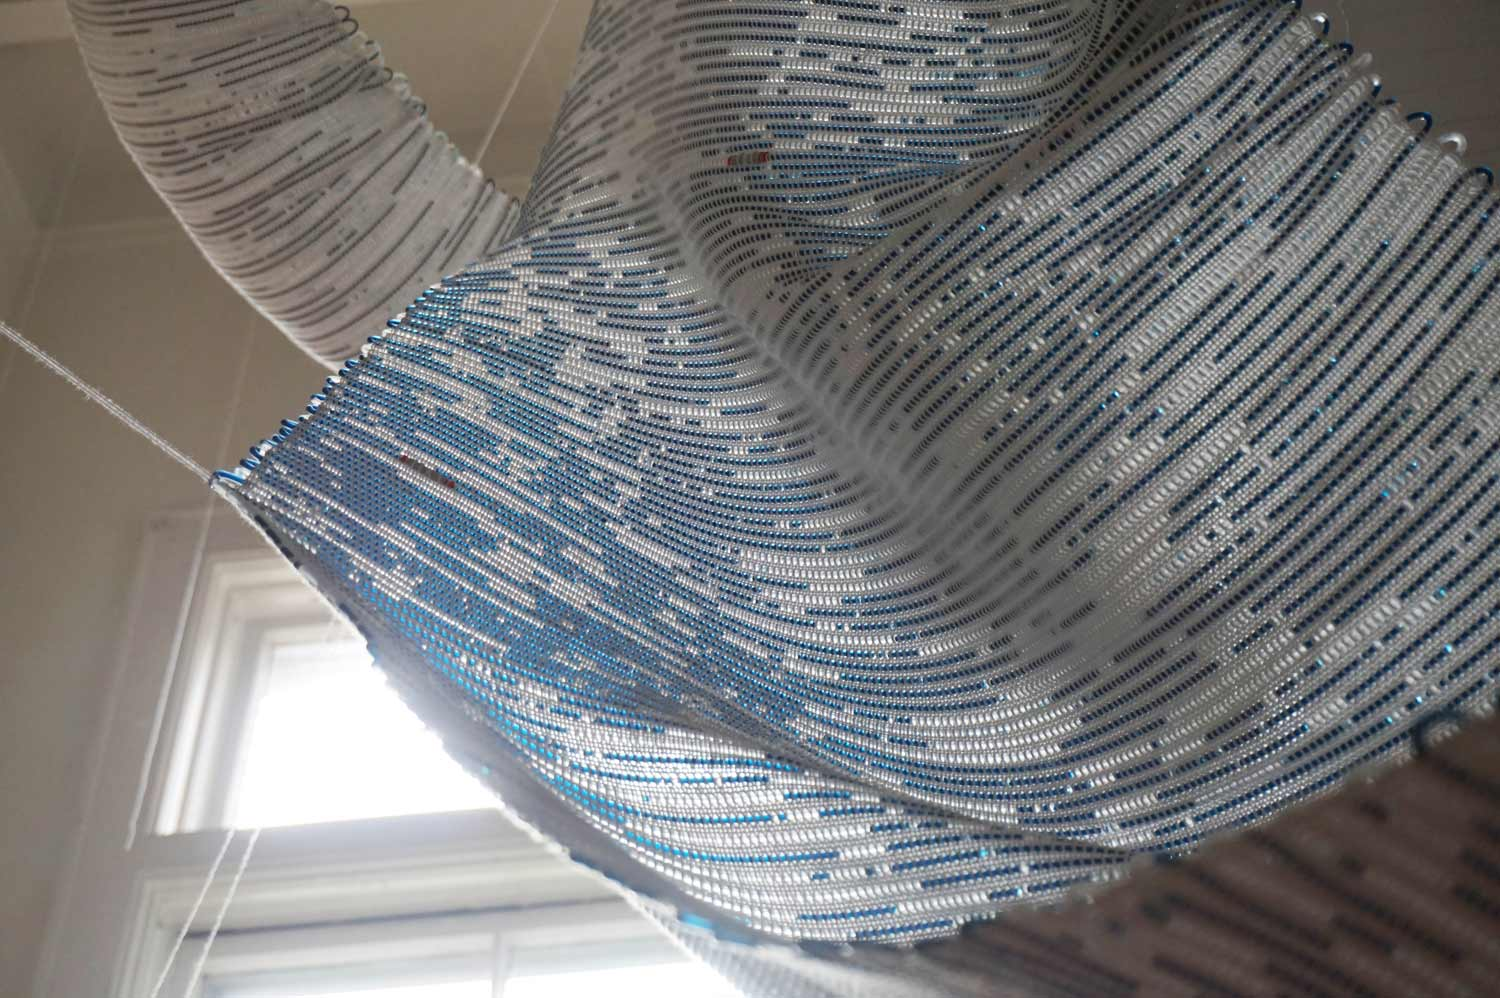 a hanging blue textile in front a window. the window lights up the textile, showing that the textile is woven with tubes filled with blue and clear liquid.